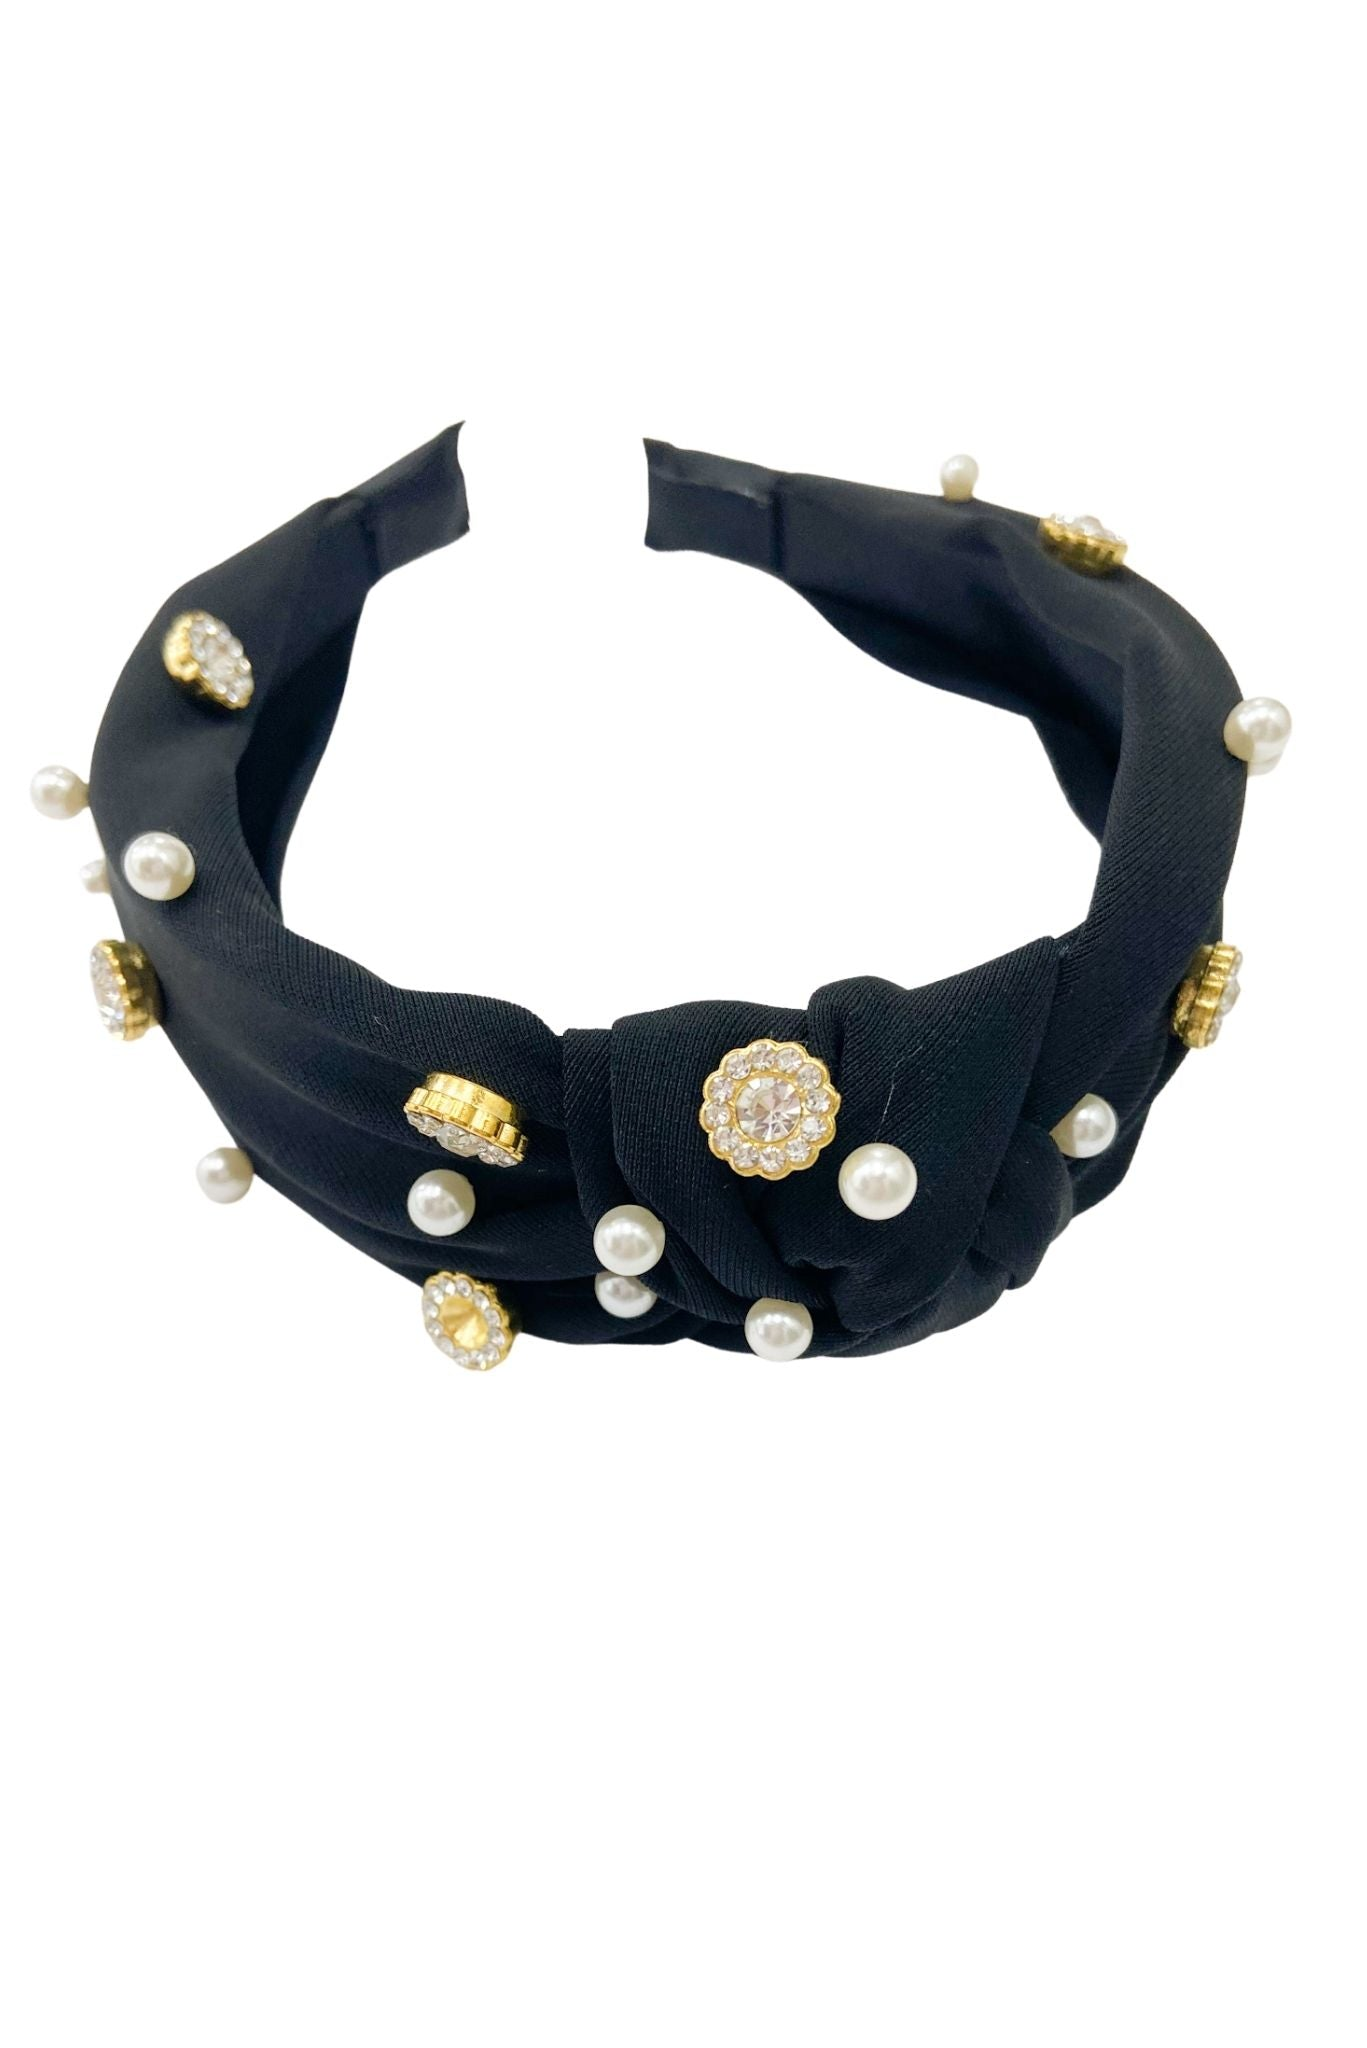 Black Headband w/ Pearl and Rhinestone Accents